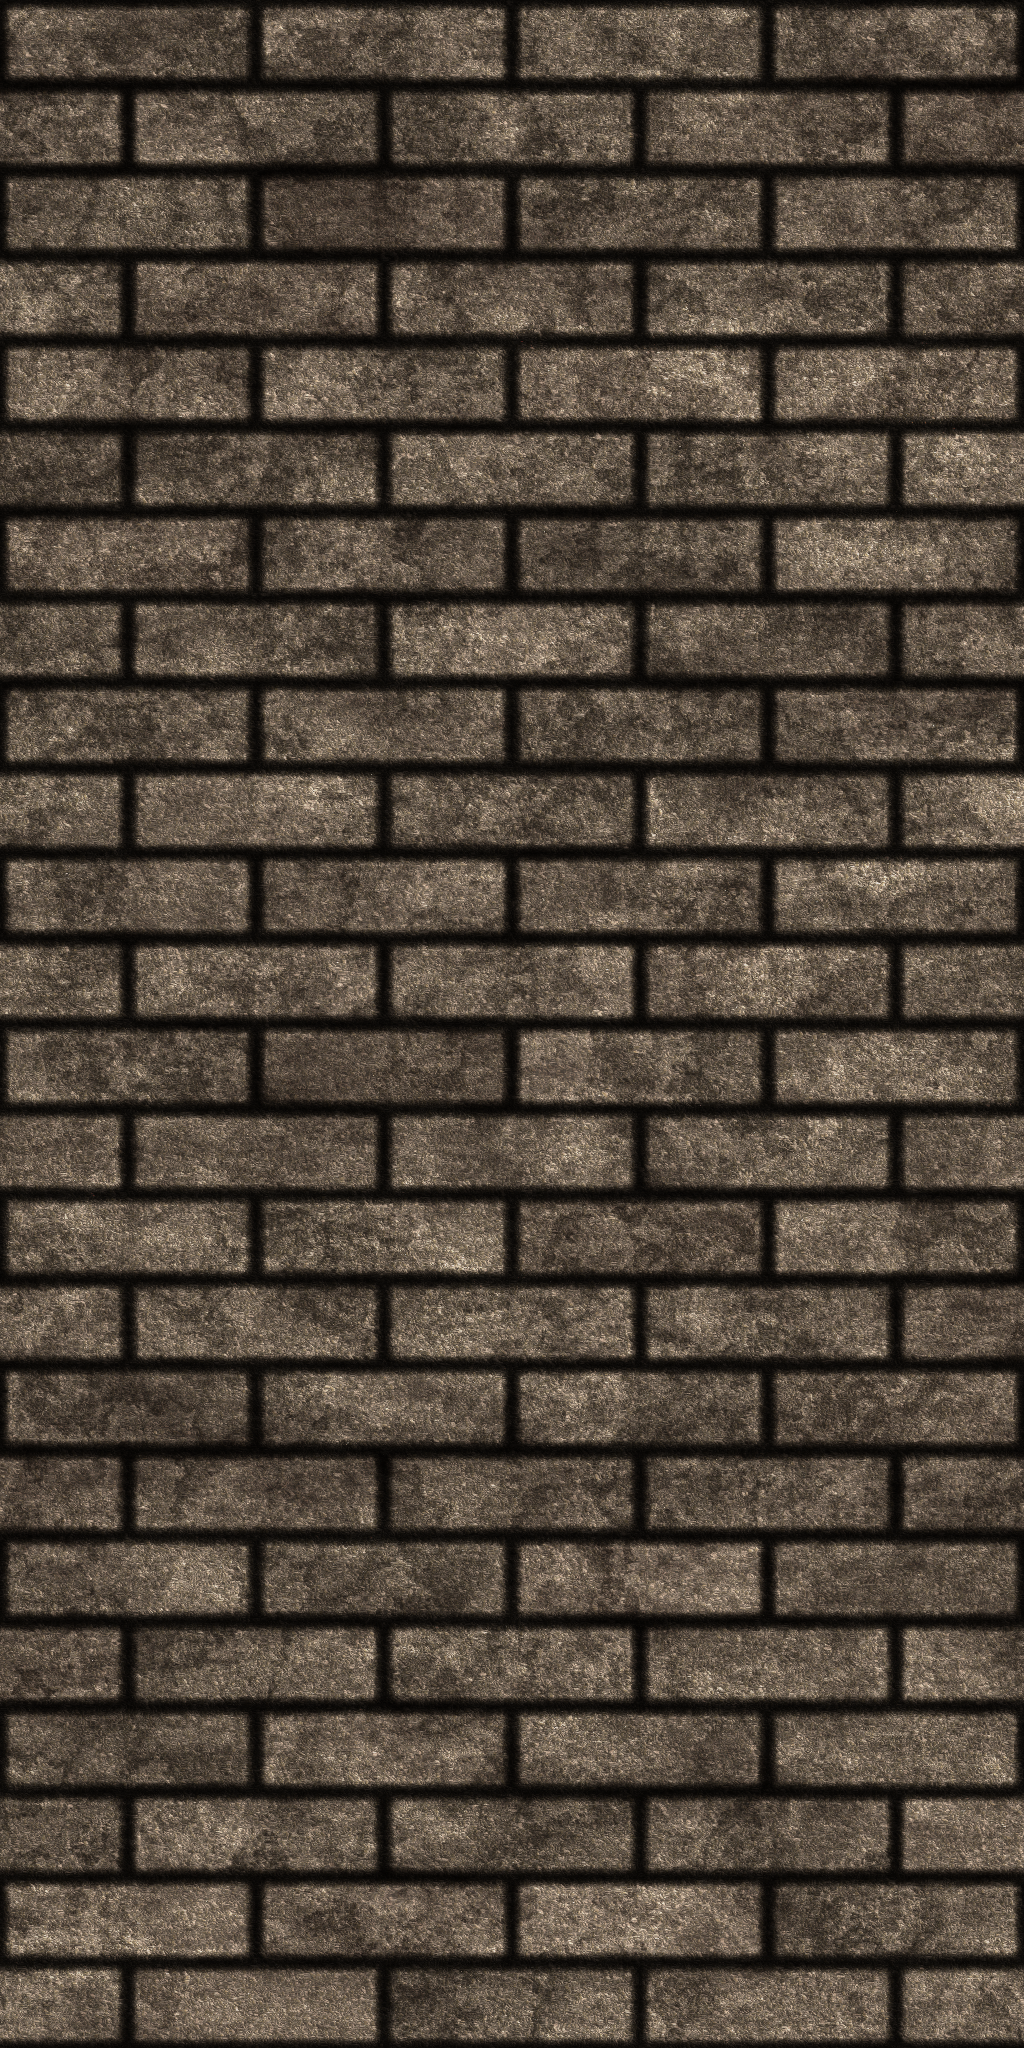 Small Brown Bricks 01 by Hoover1979